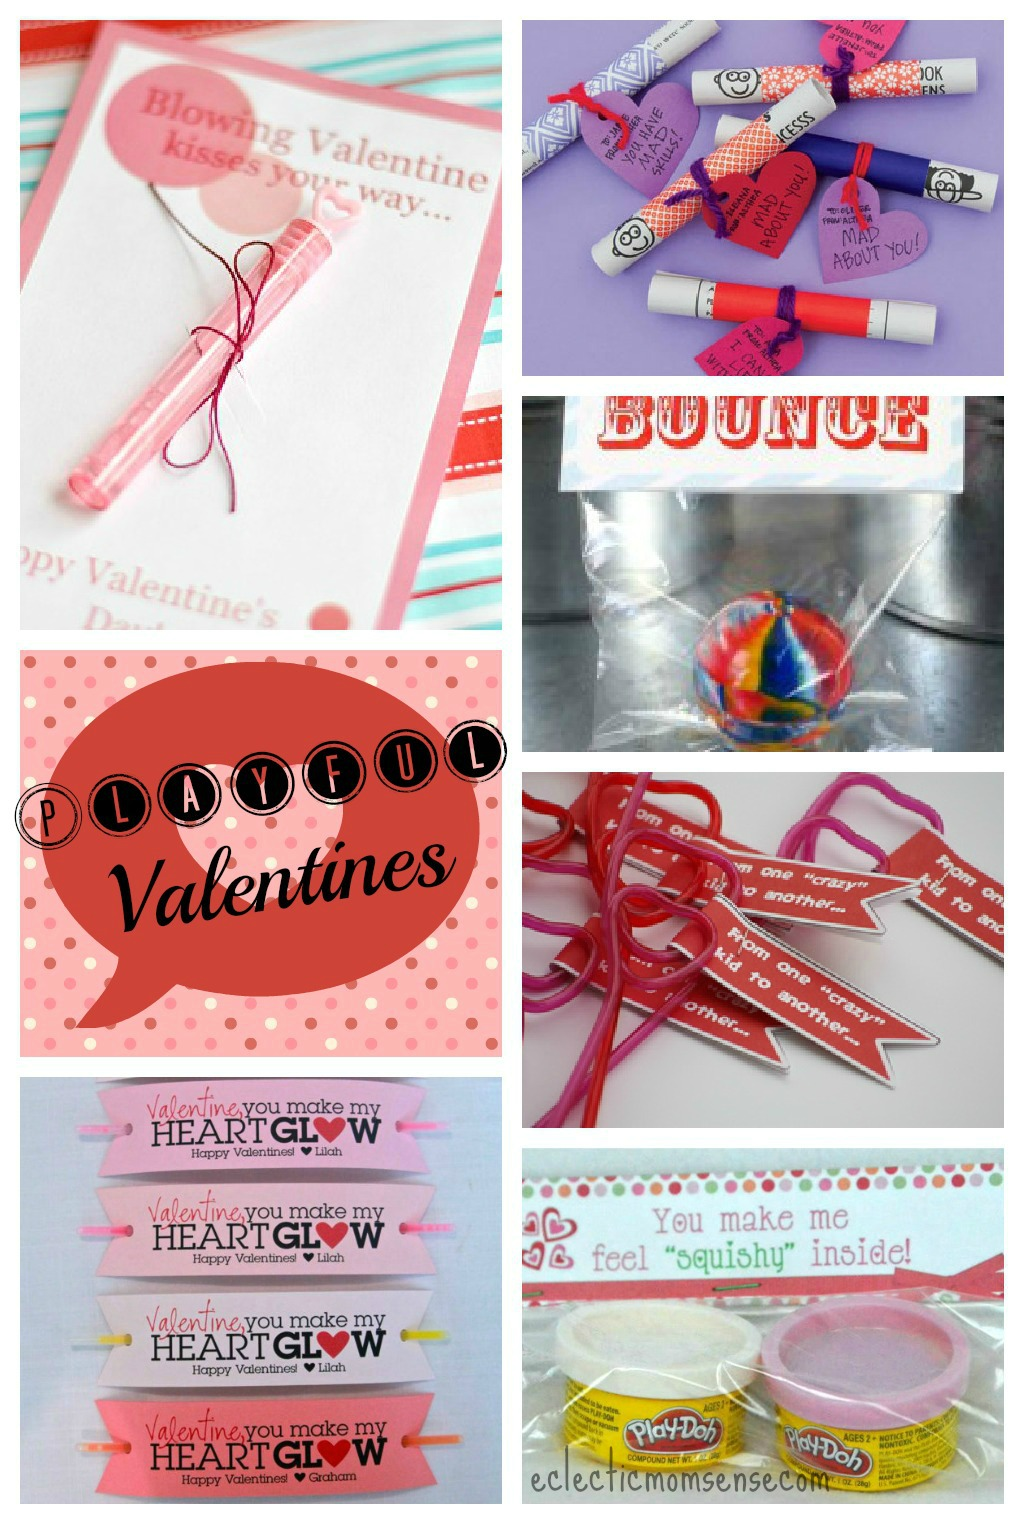 Valentines Ideas with toys via @eclecticmommy - eclecticmomsense.com